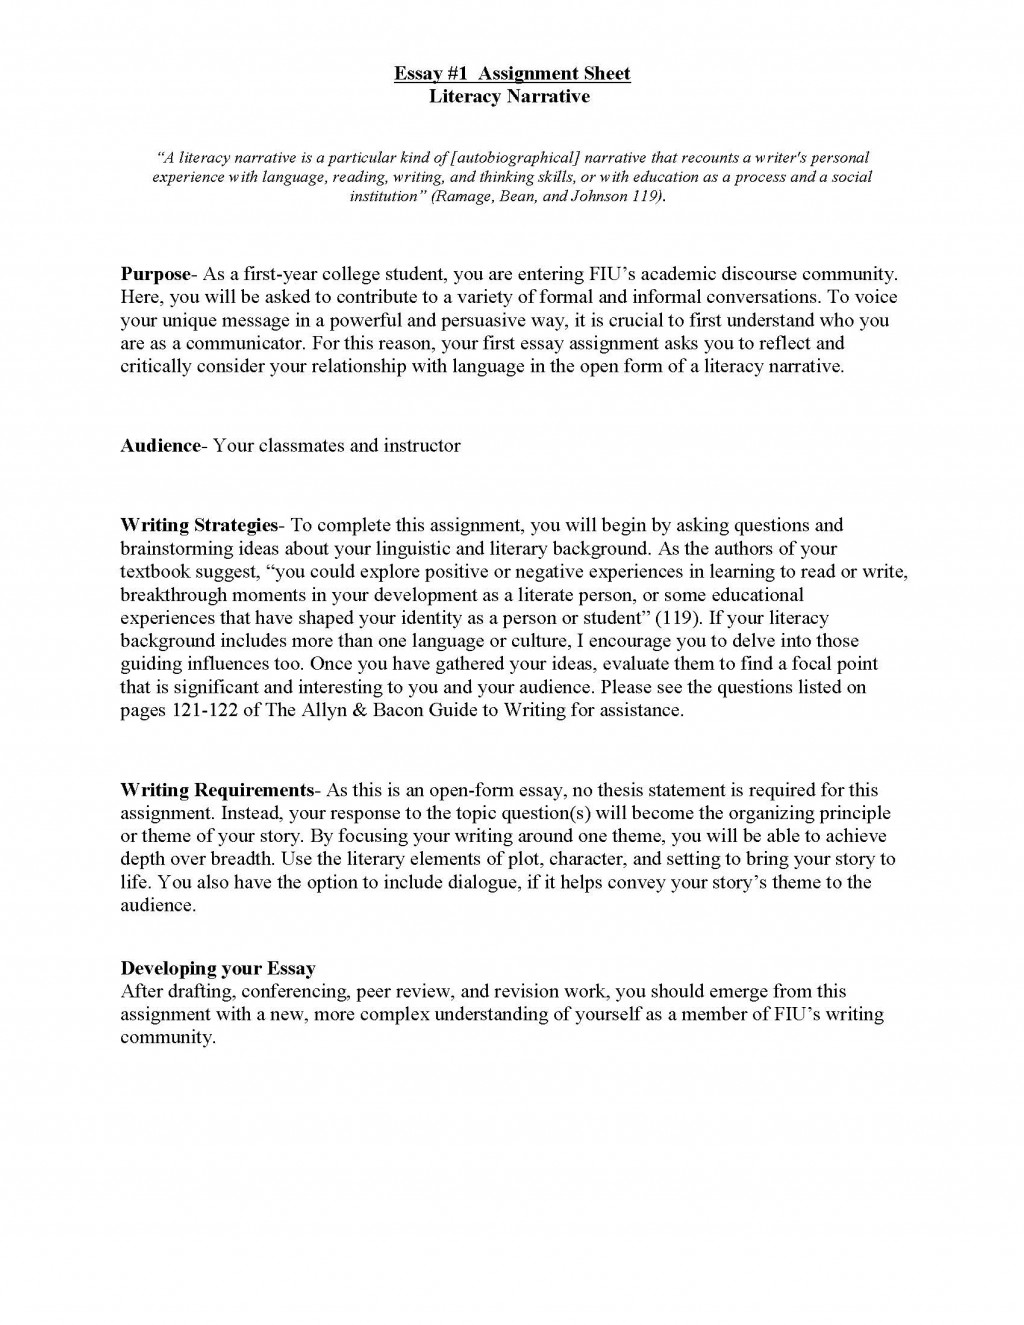 020 Narrative Essay Sample Example Literacy Unit Assignment Spring 2012 Page 1 Dreaded Spm 2011 About Love Interesting Samples Large